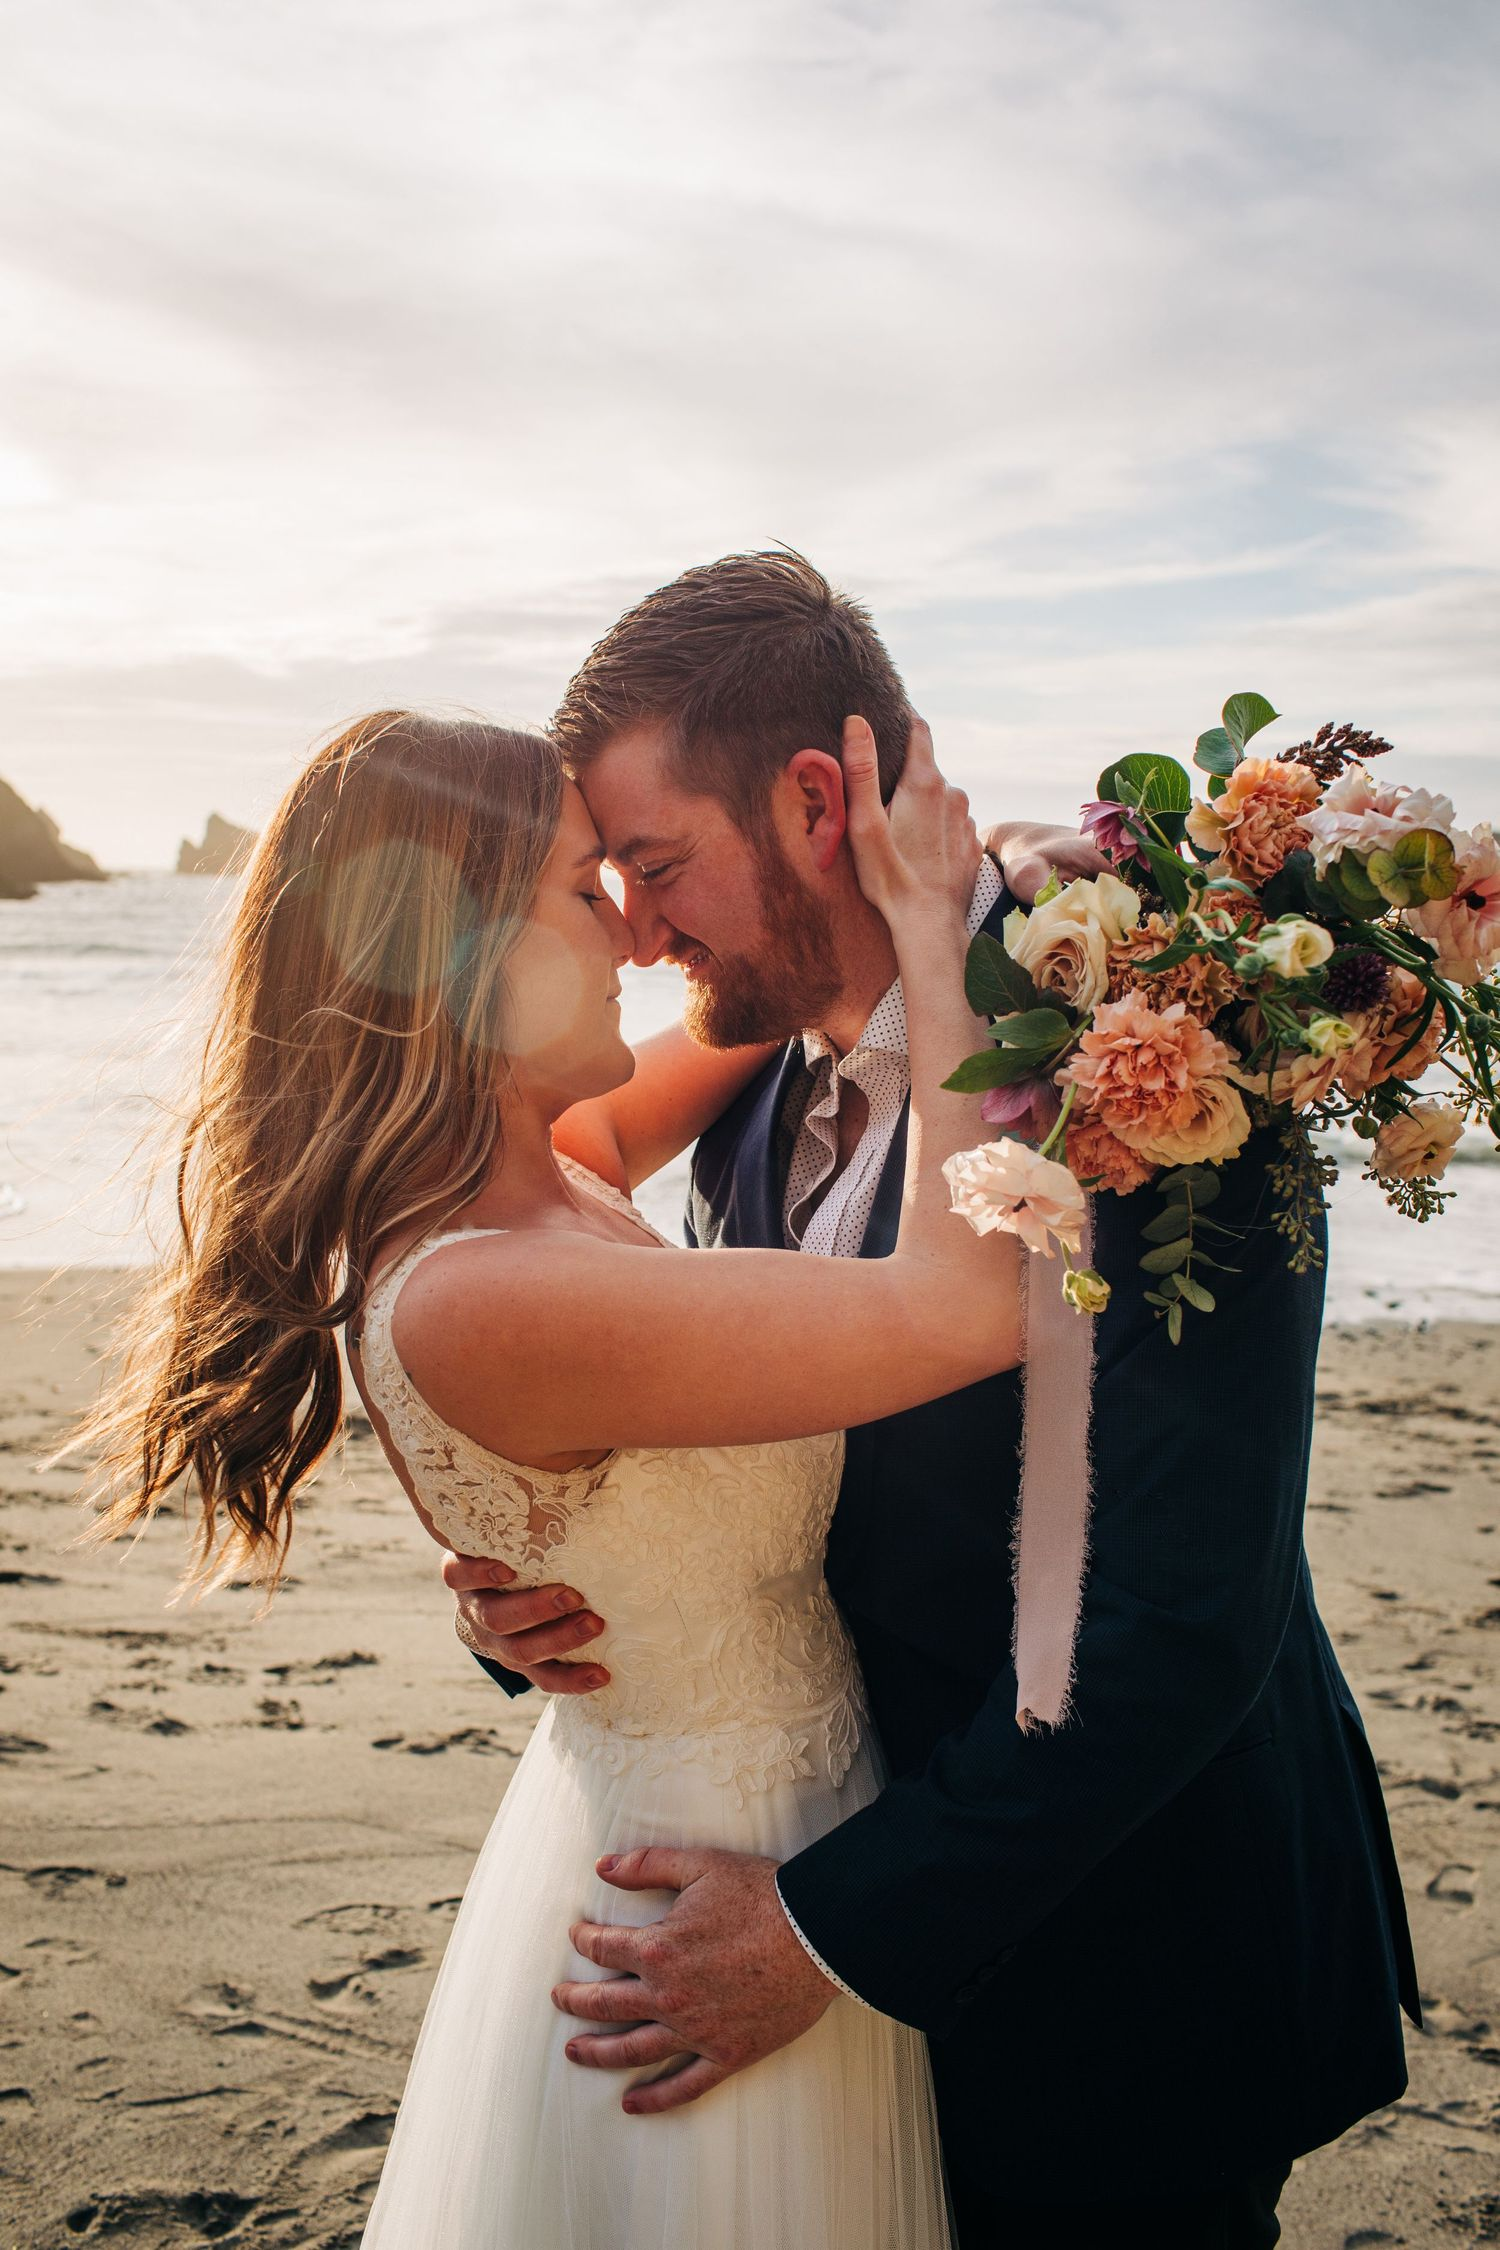 A newly married couple embraces on their elopement wedding day in Mendocino, California.